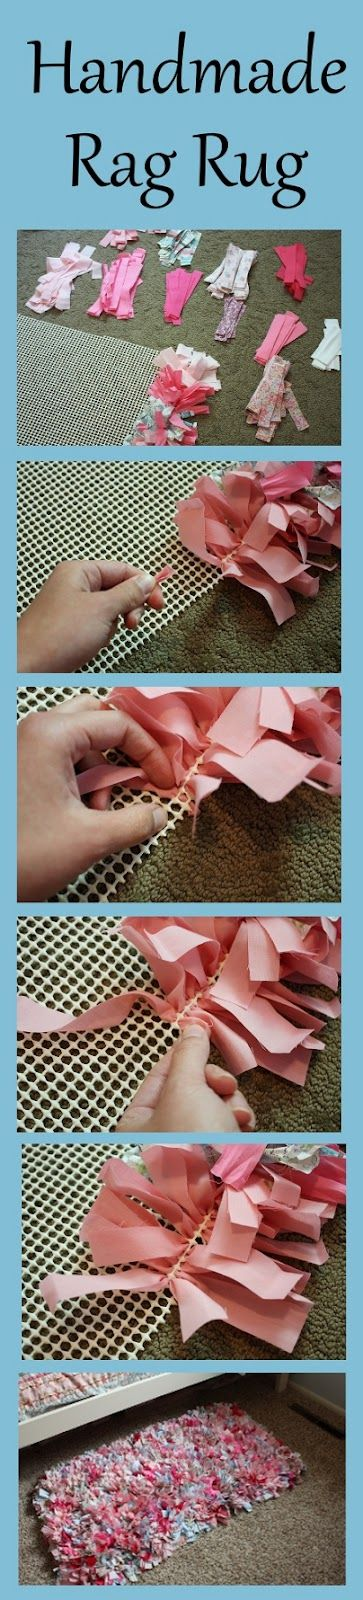 How to make a  rag rug going to use the scraps from my grandmother's sewing to make these for the kids..